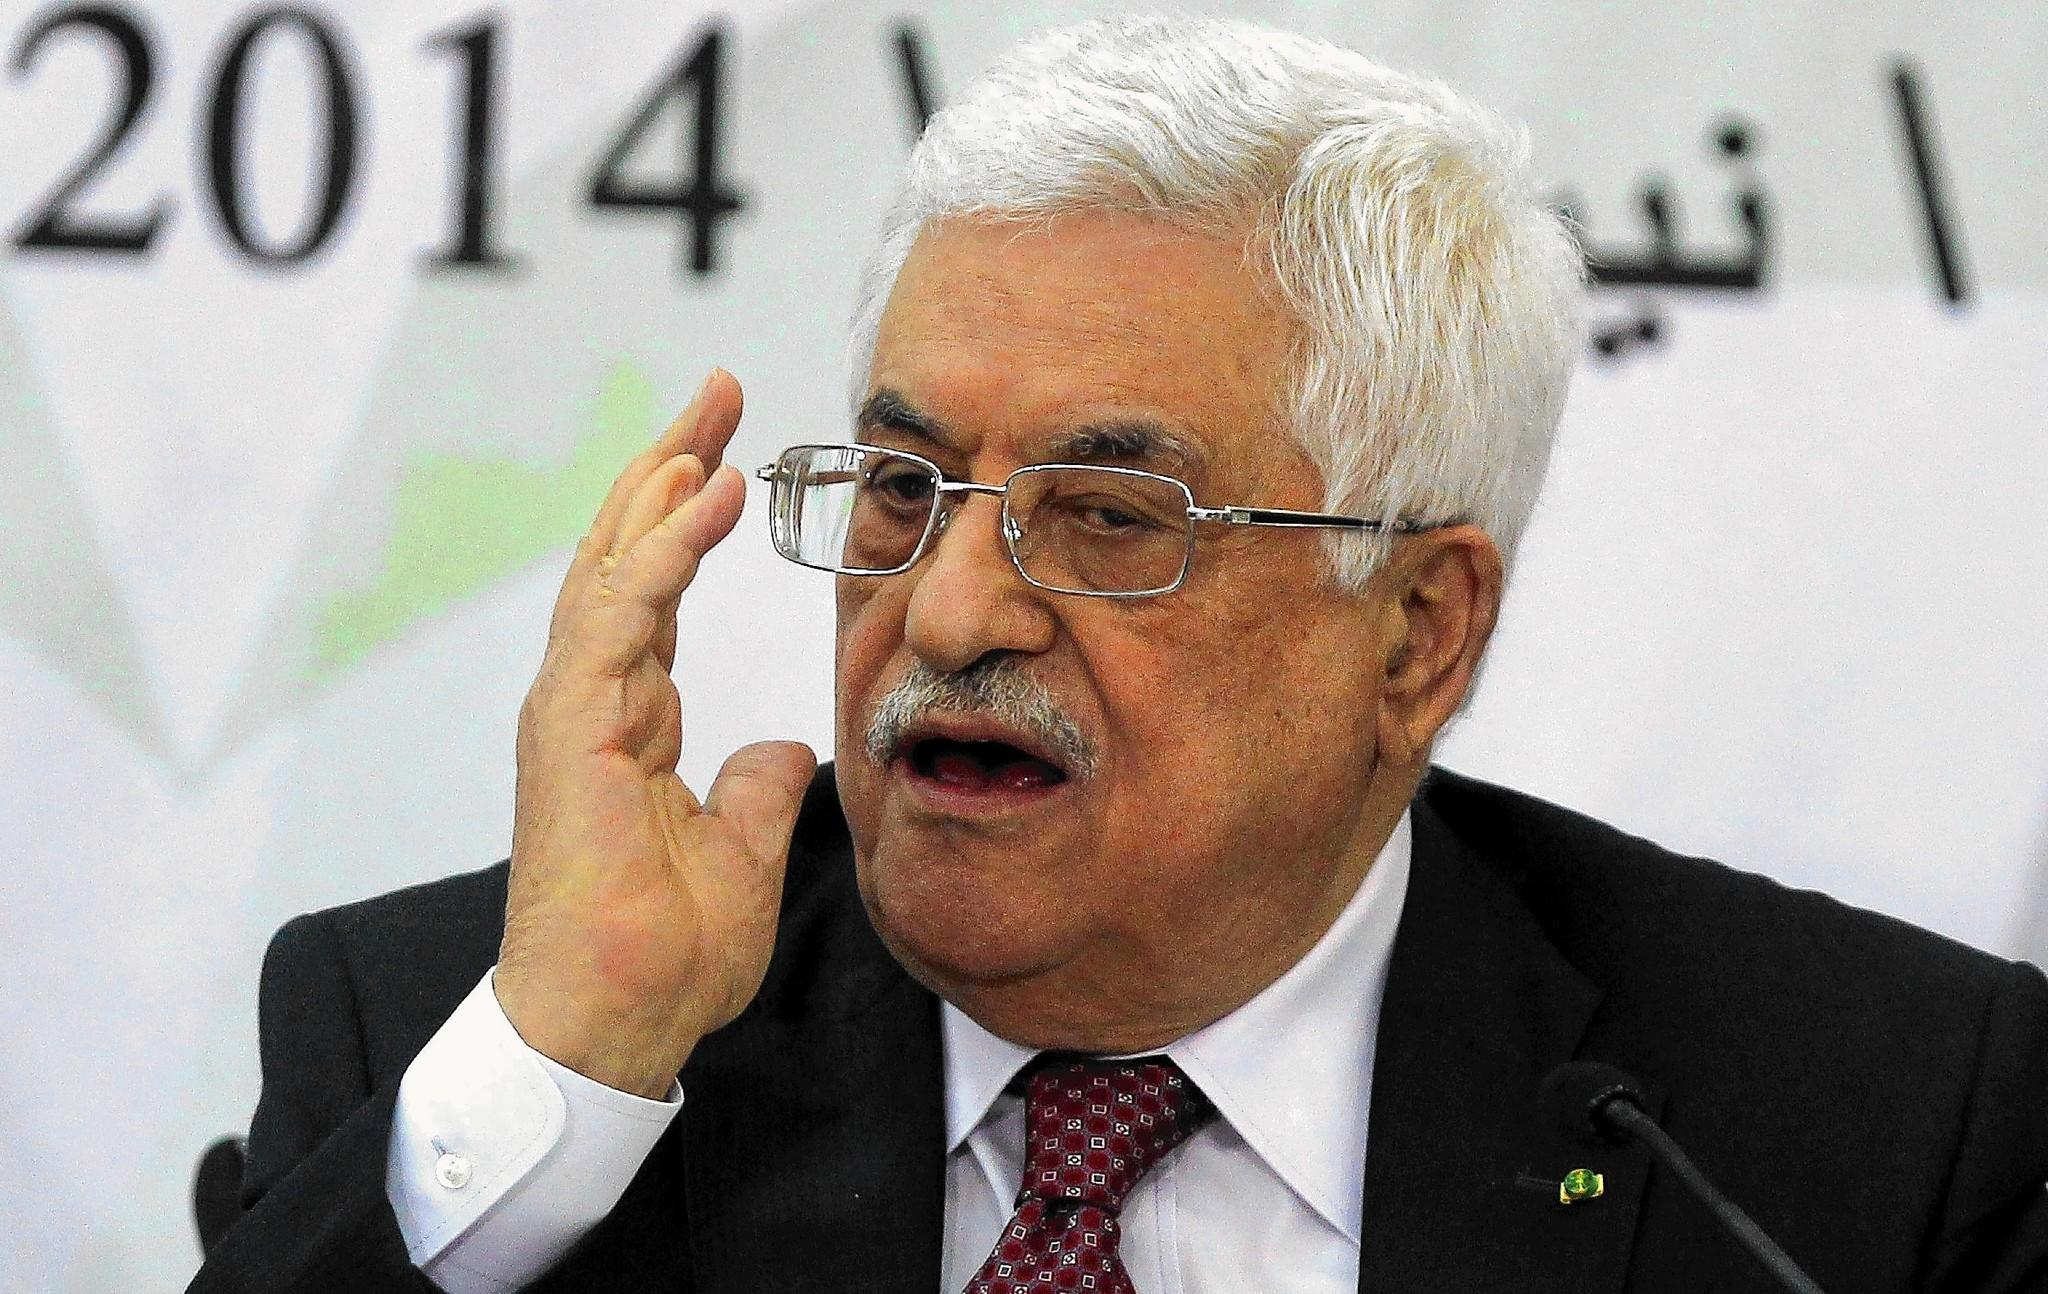 Palestinian Authority President Mahmoud Abbas expressed sympathy for the families who died at the hands of the Nazis.